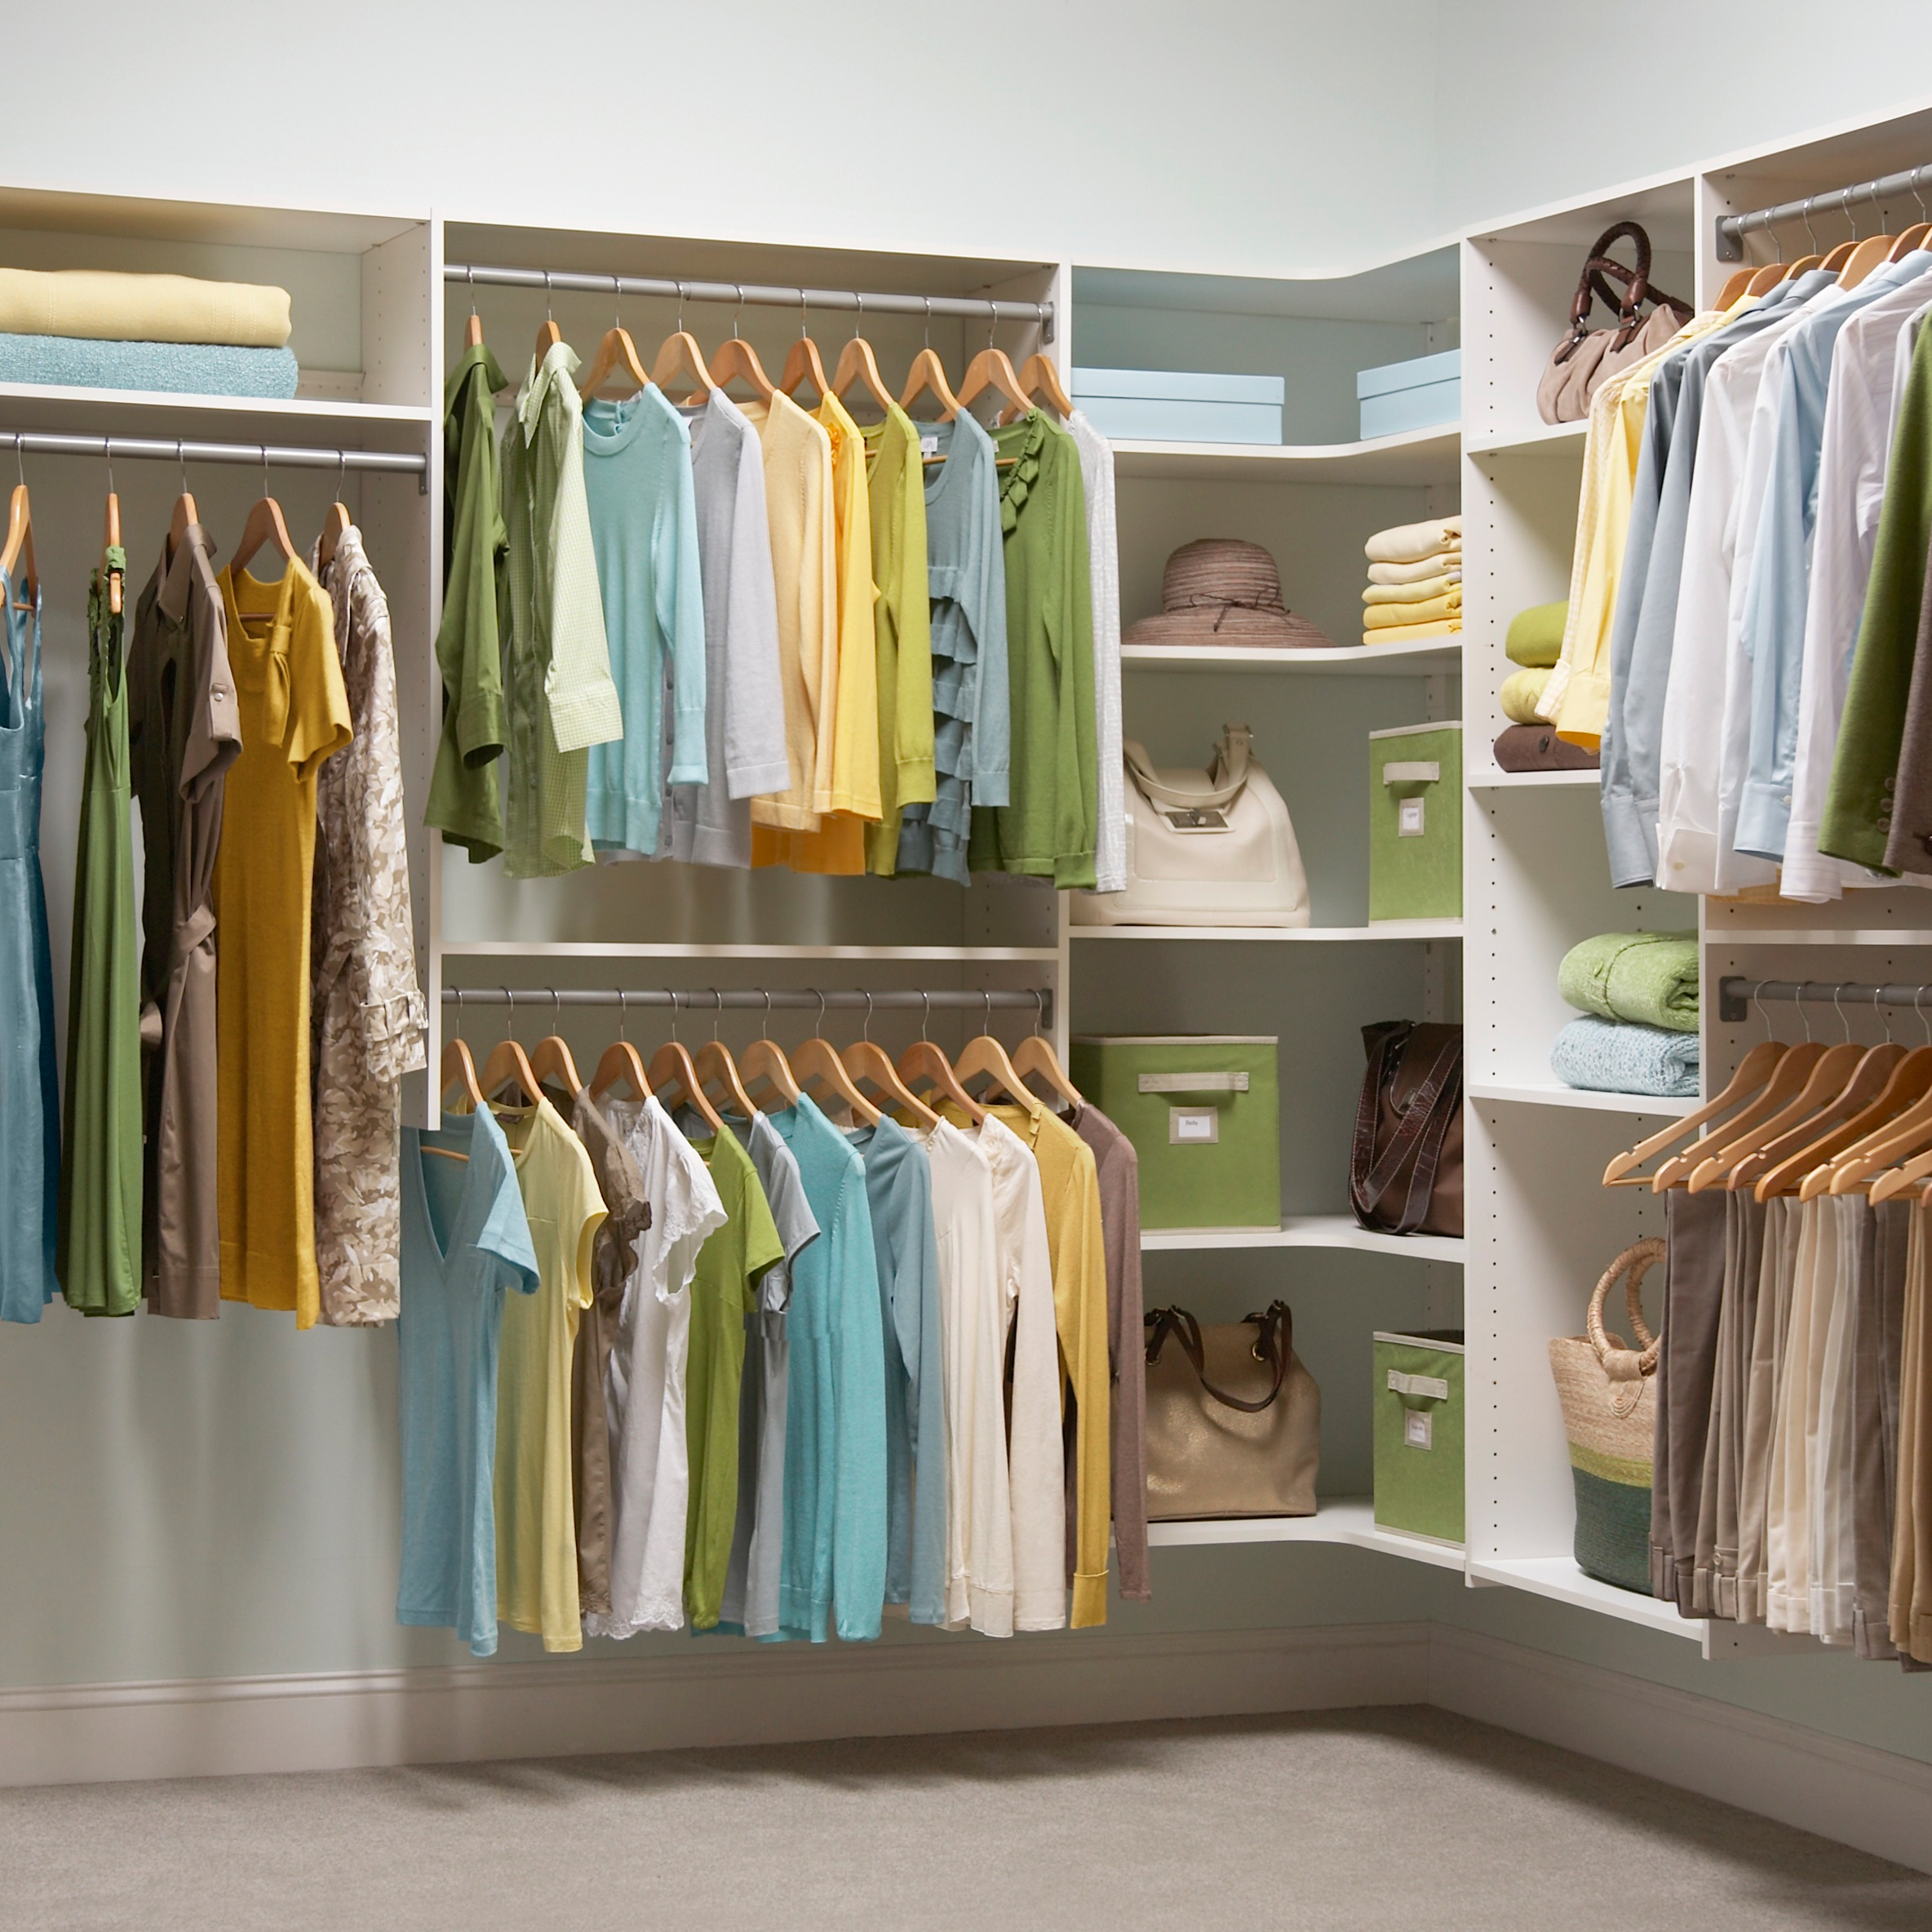 4 Ways to Think Outside the Closet | Martha Stewart